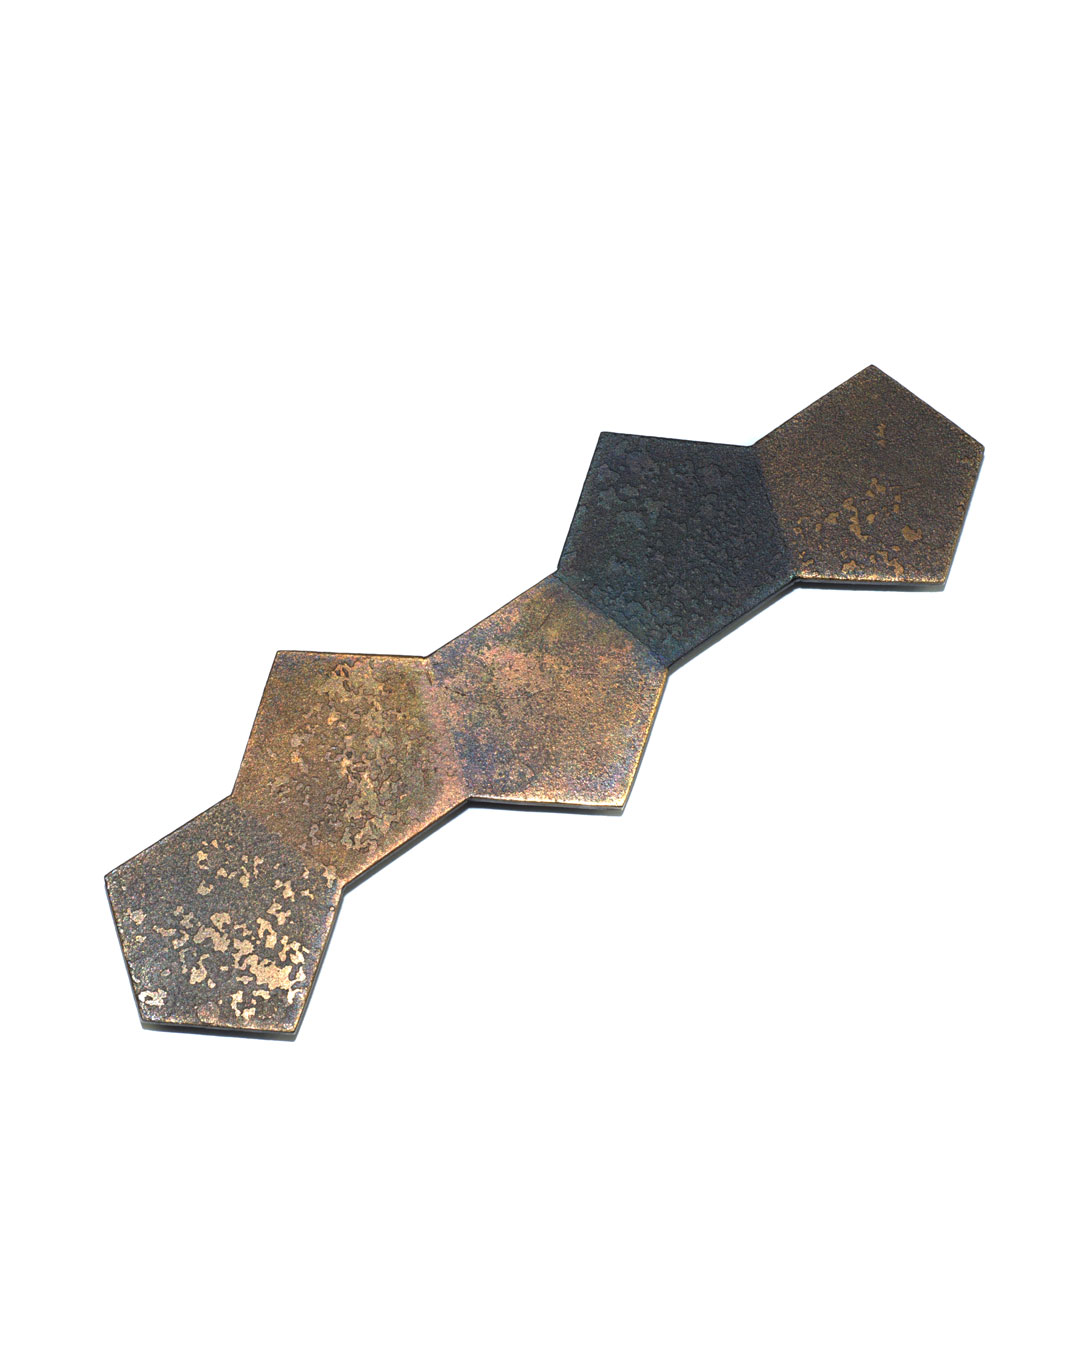 Tore Svensson, Pentagon, 2008, brooch; etched steel, partly gilt, 100 x 35 x 1.5 mm, €425